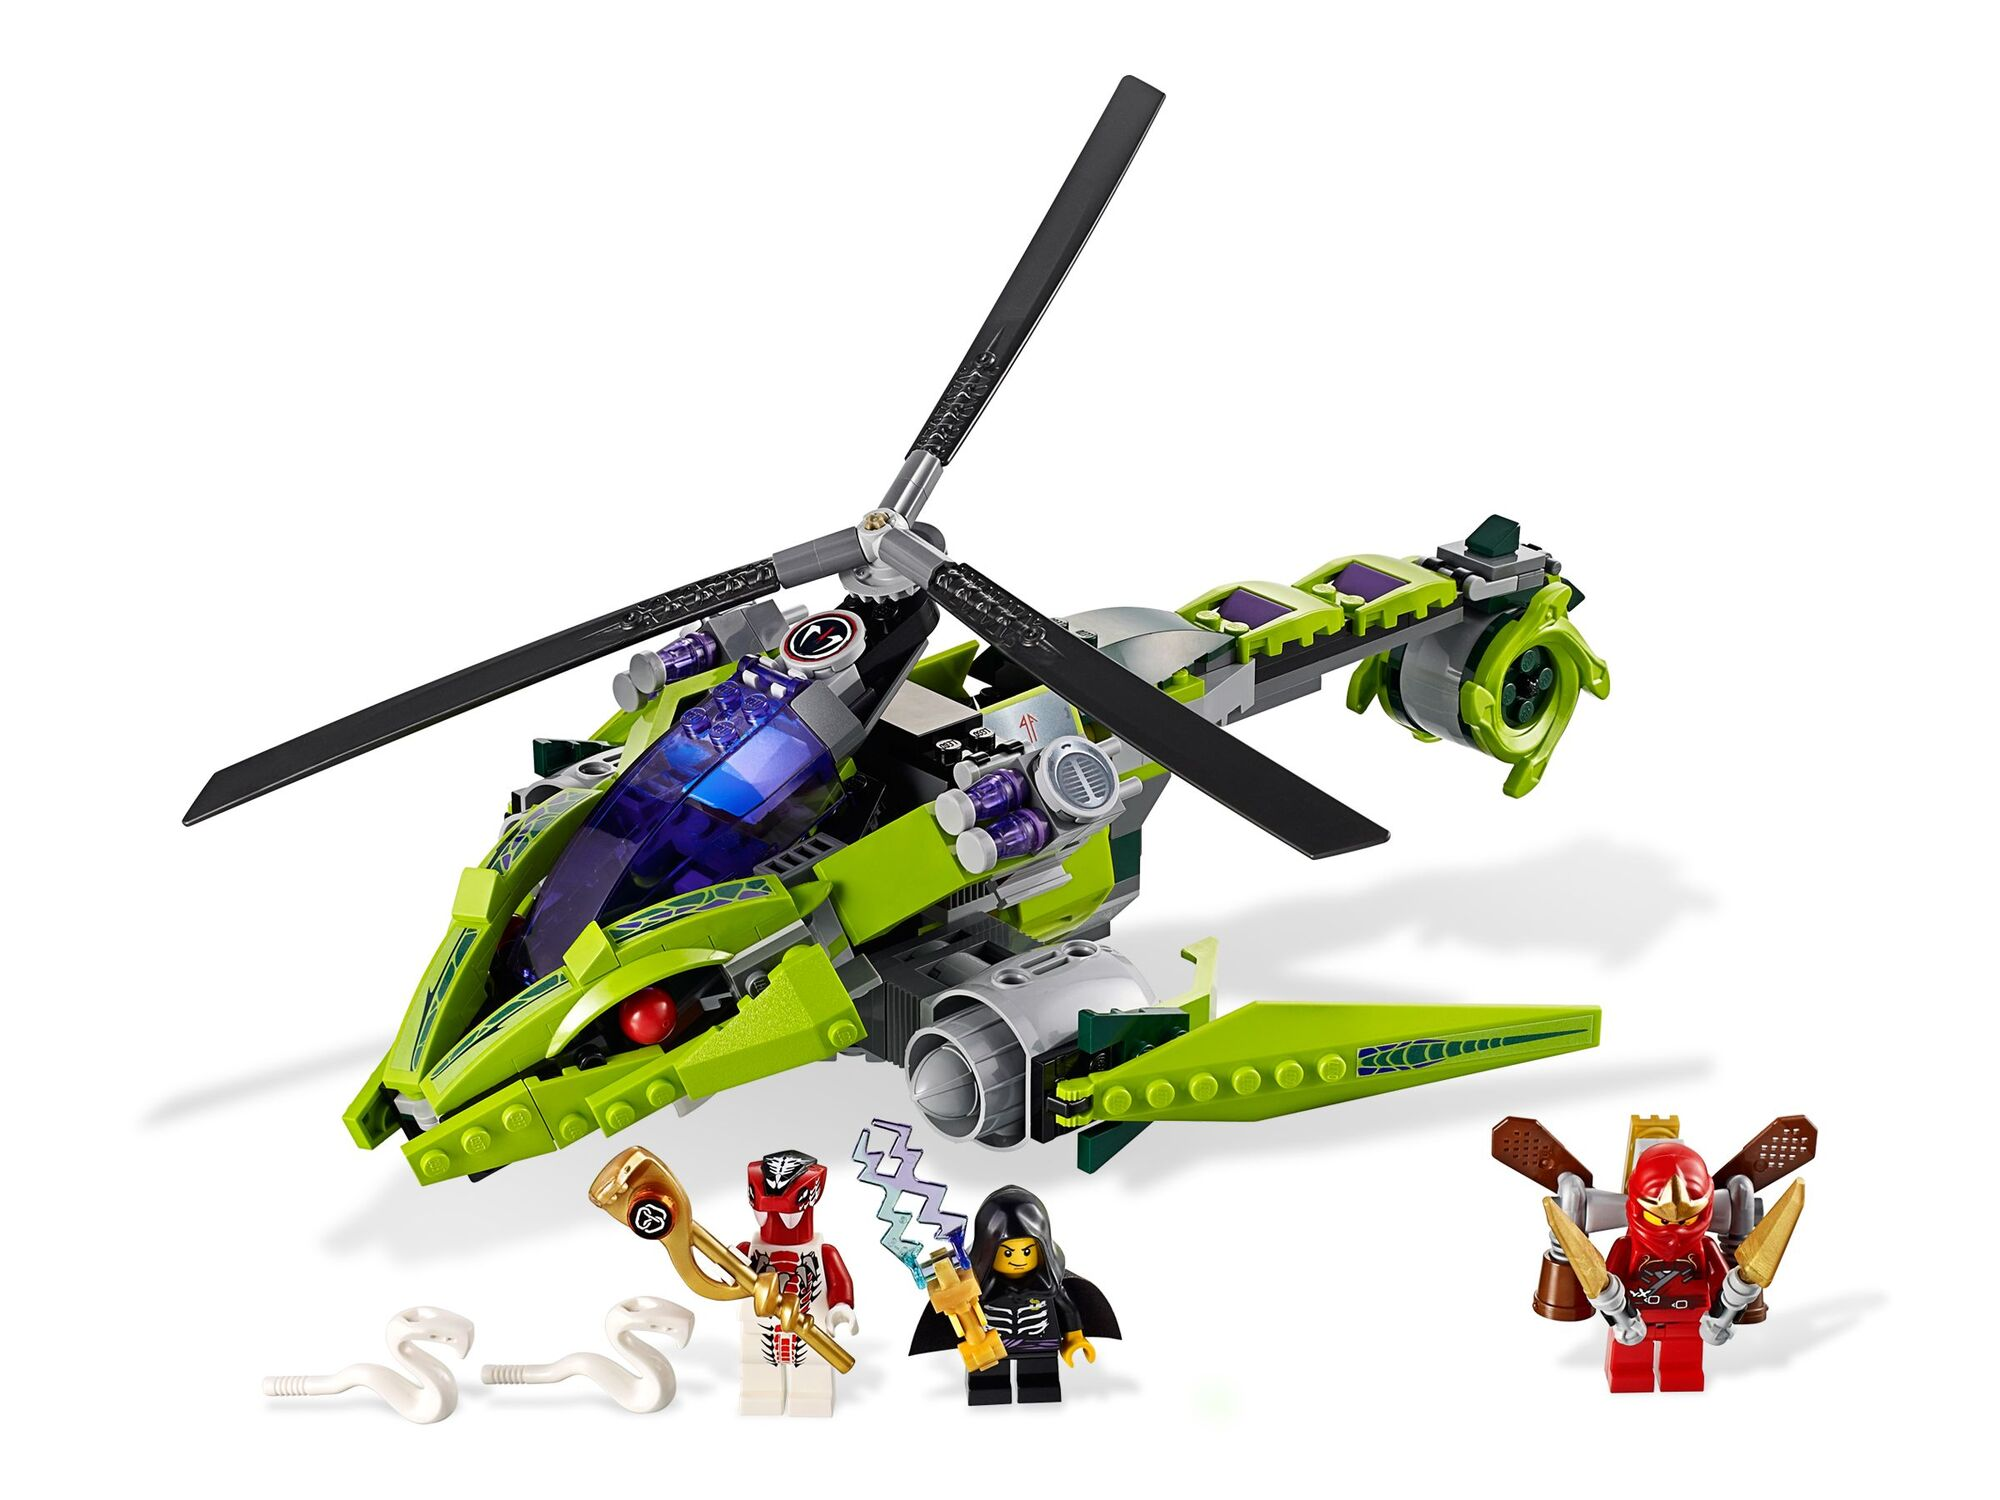 9443 Chrzęstokopter Lego Ninjago Wiki Fandom Powered By Wikia